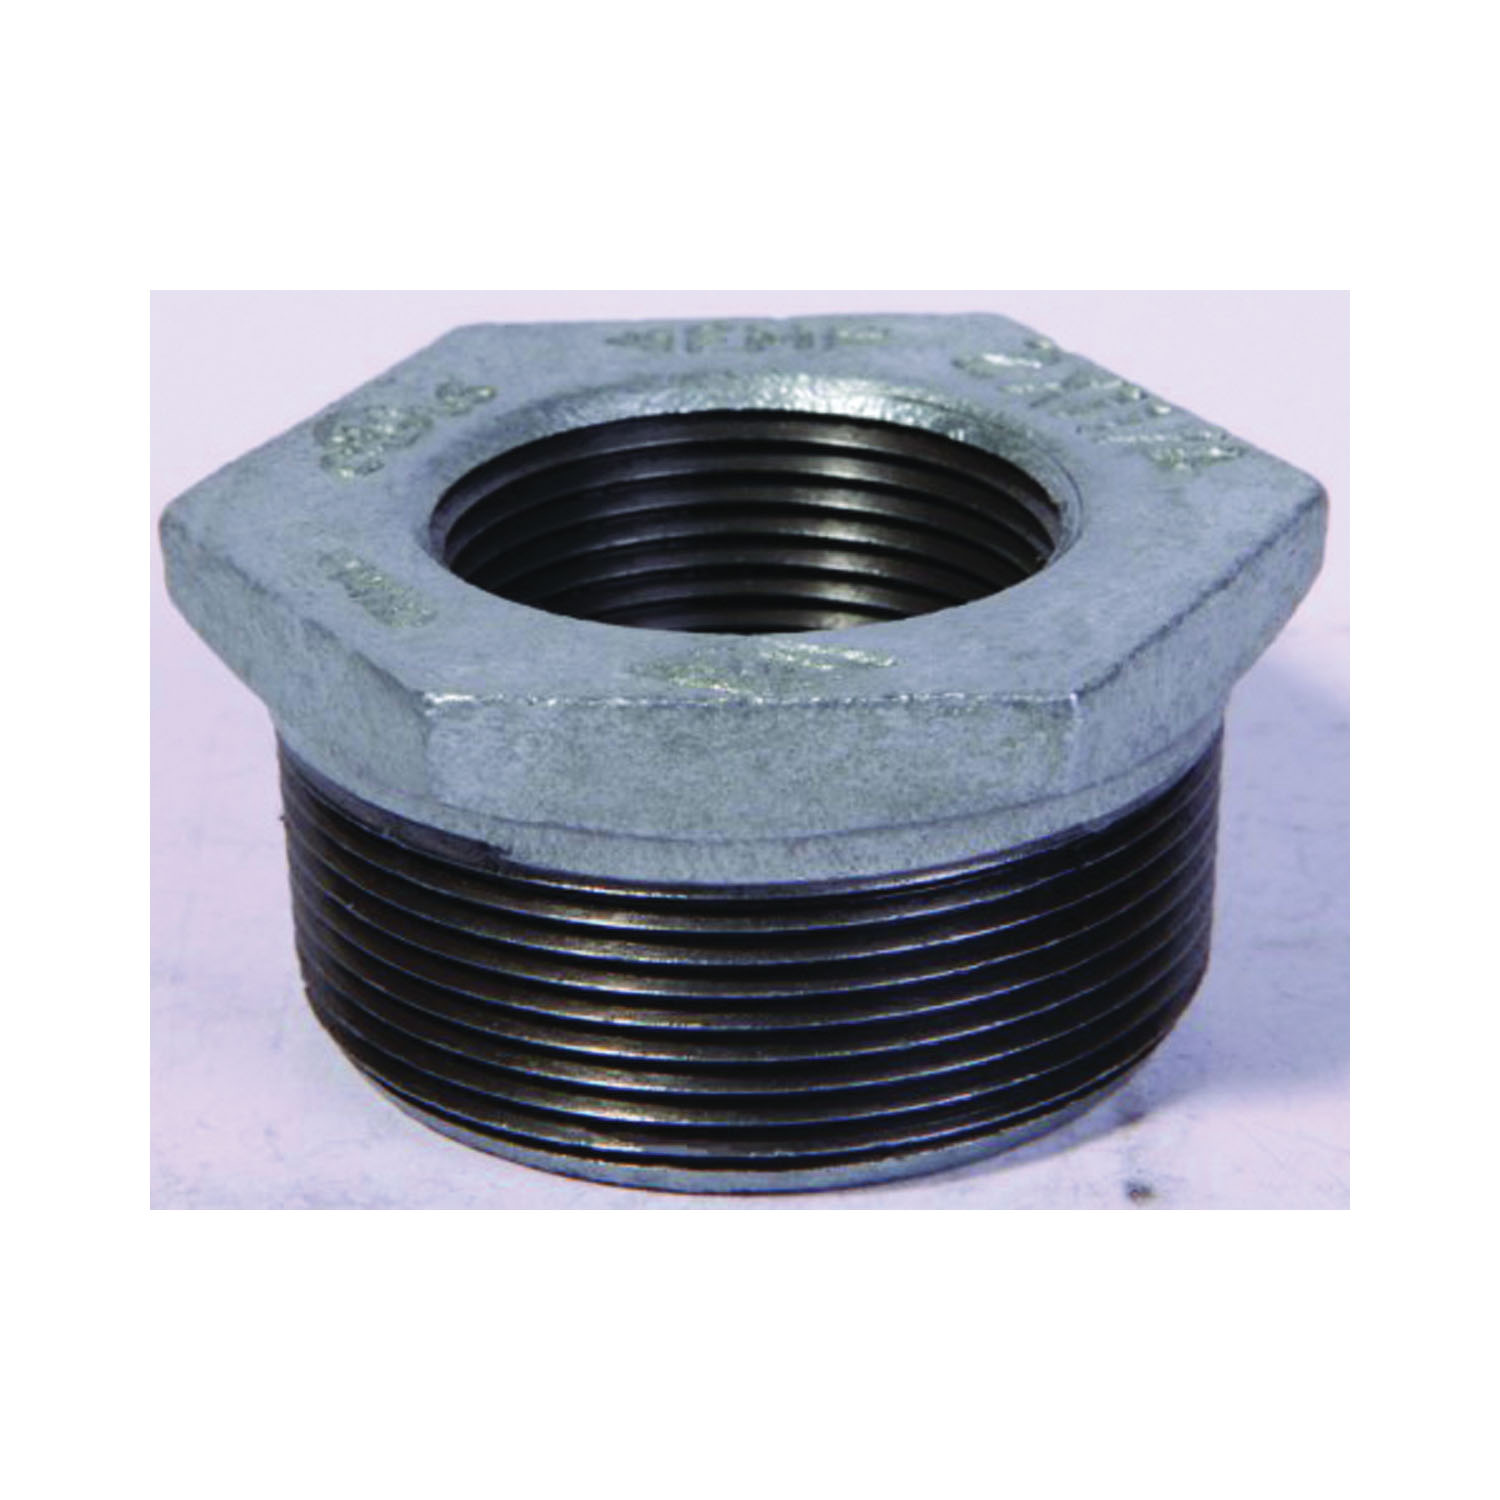 Picture of ProSource 35-1/2X3/8G Galvanized Bushing, 1/2 x 3/8 in, MIP x FIP